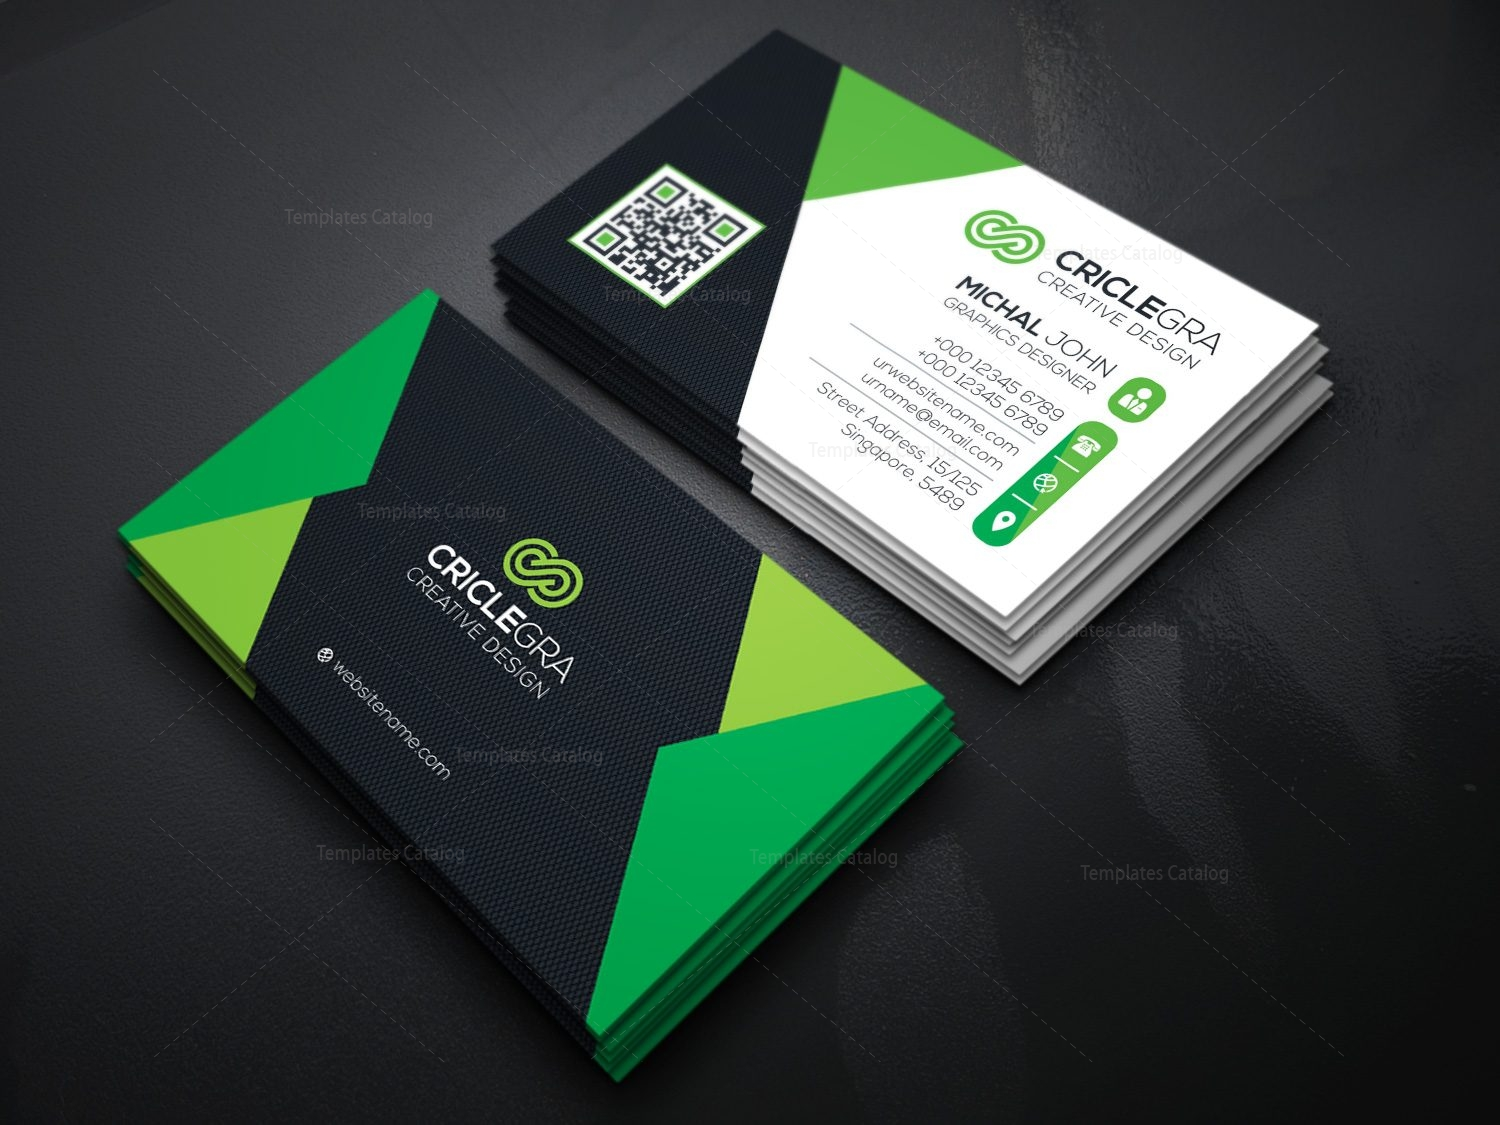 Elegant Visiting Card Template 000087 - Template Catalog